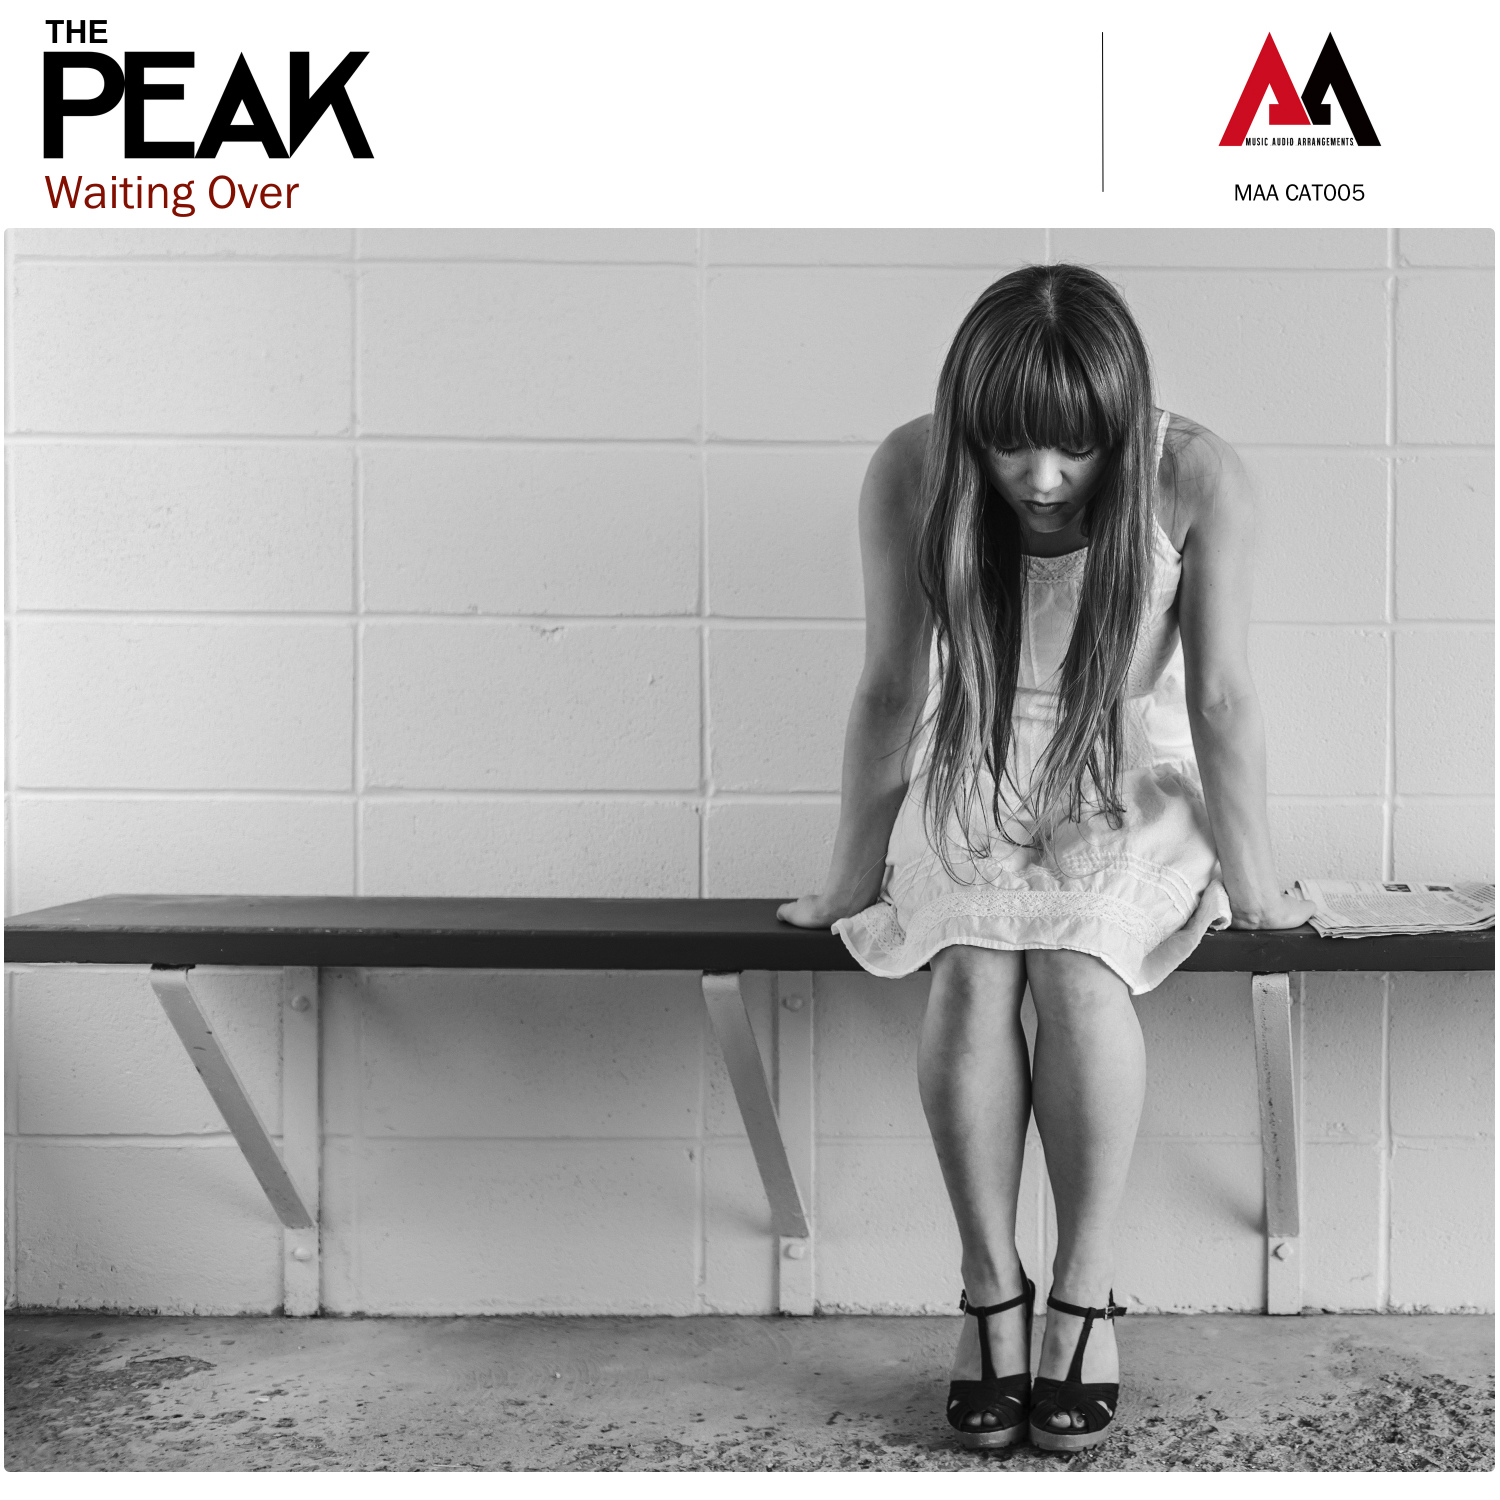 The Peak - Waiting over (Music Audio Arrangements)